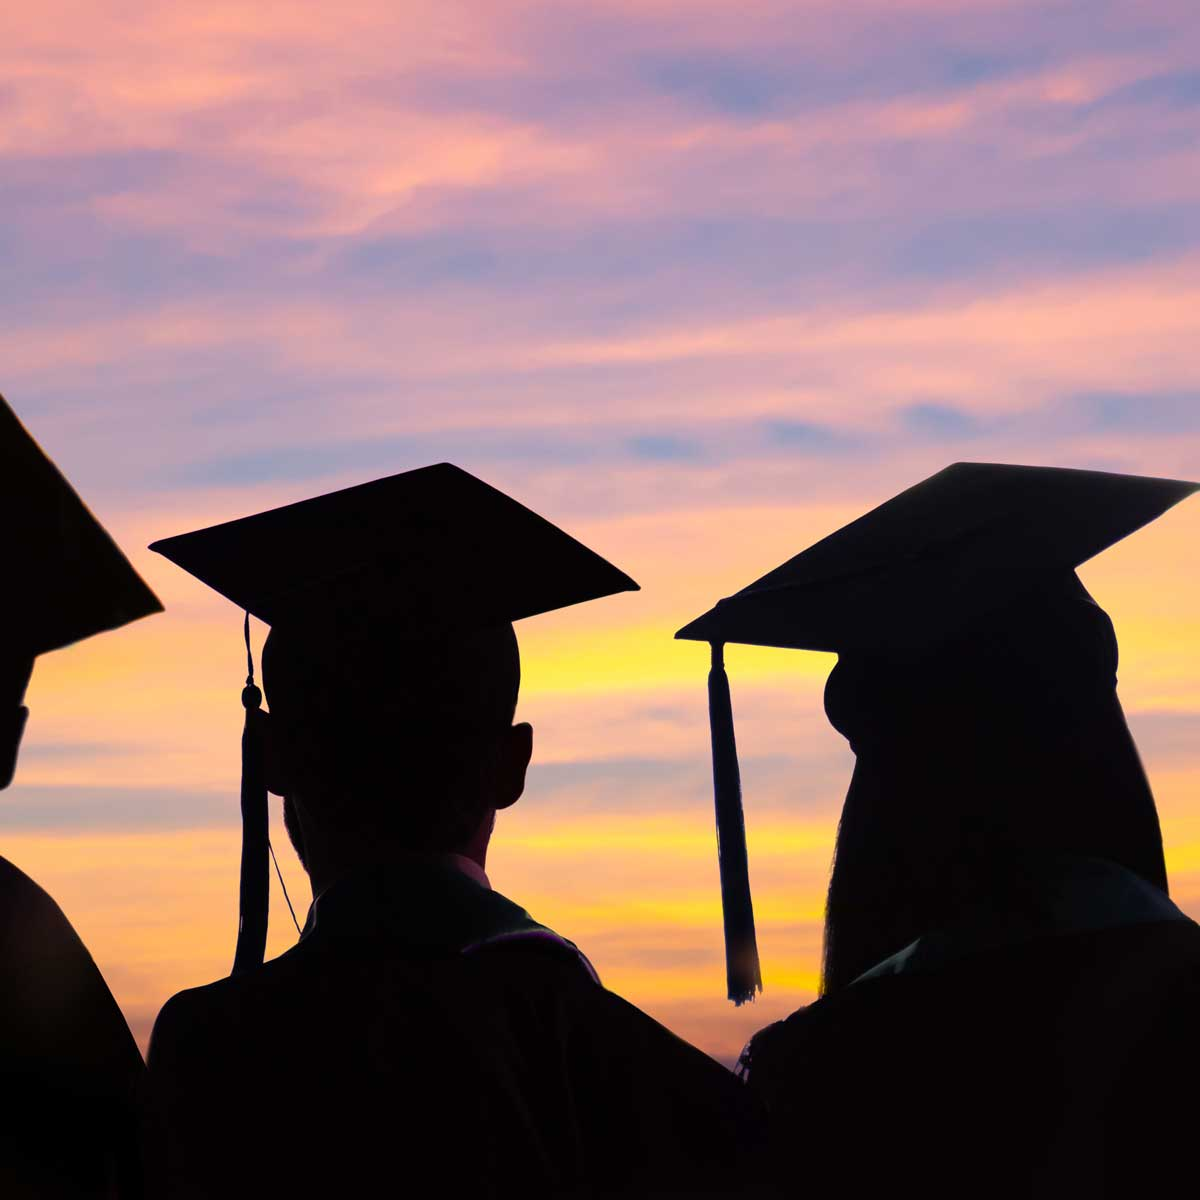 Silhouettes of students with graduate caps in a row on sunset background. Graduation ceremony at university web banner.